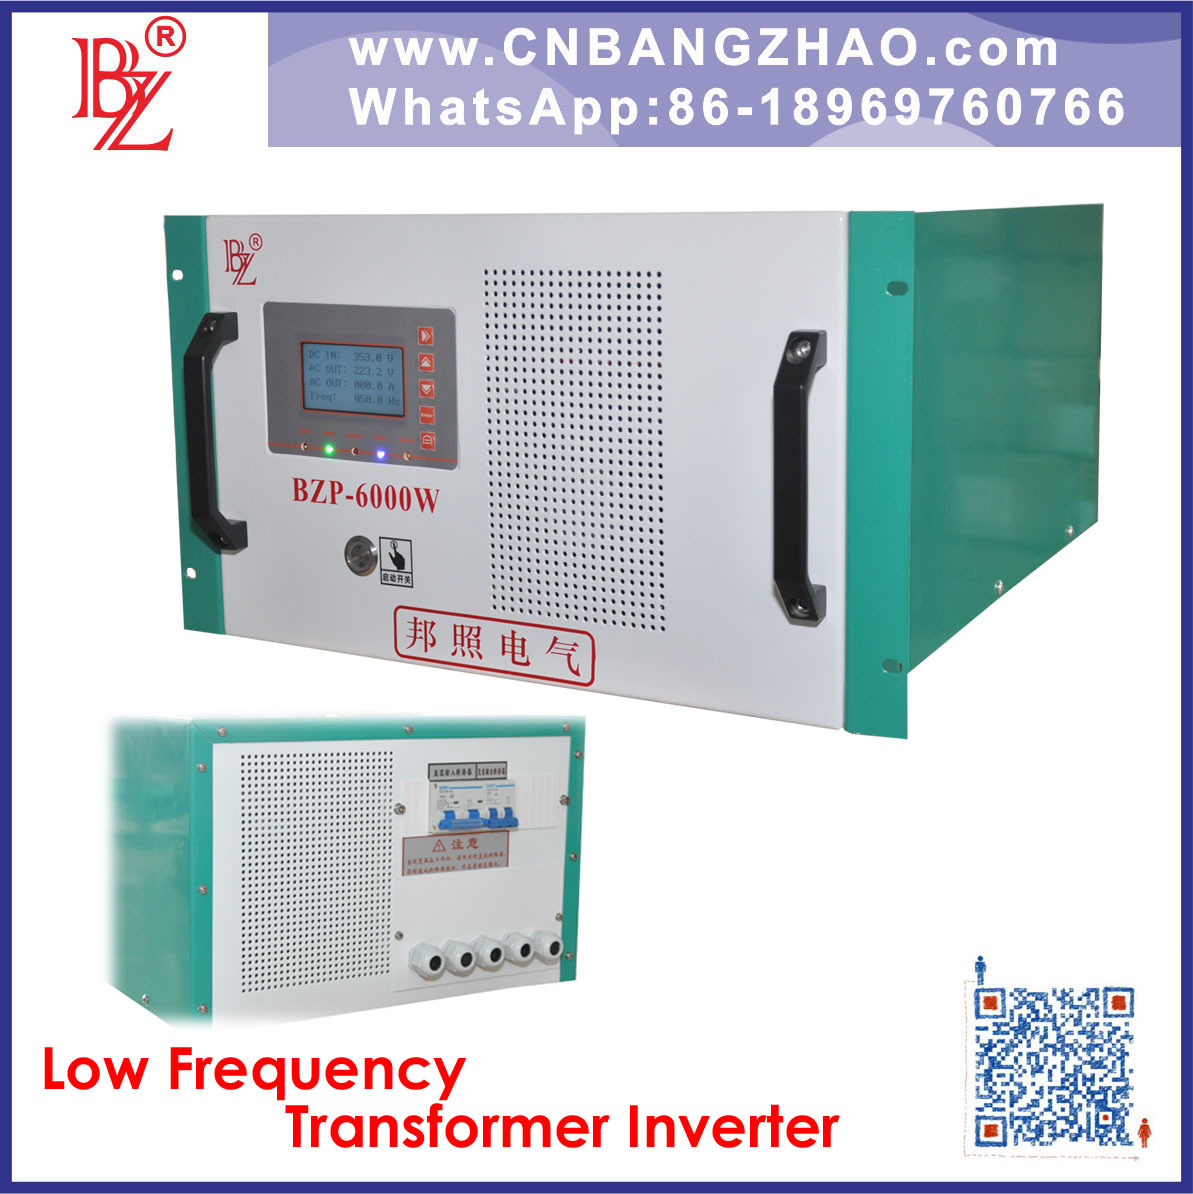 48V 96V 120V 240V DC Input Low Frequecy Transformer Hybrid Inverter with 120/240V Split Phase Output for Pure Sine Wave Solar Power System